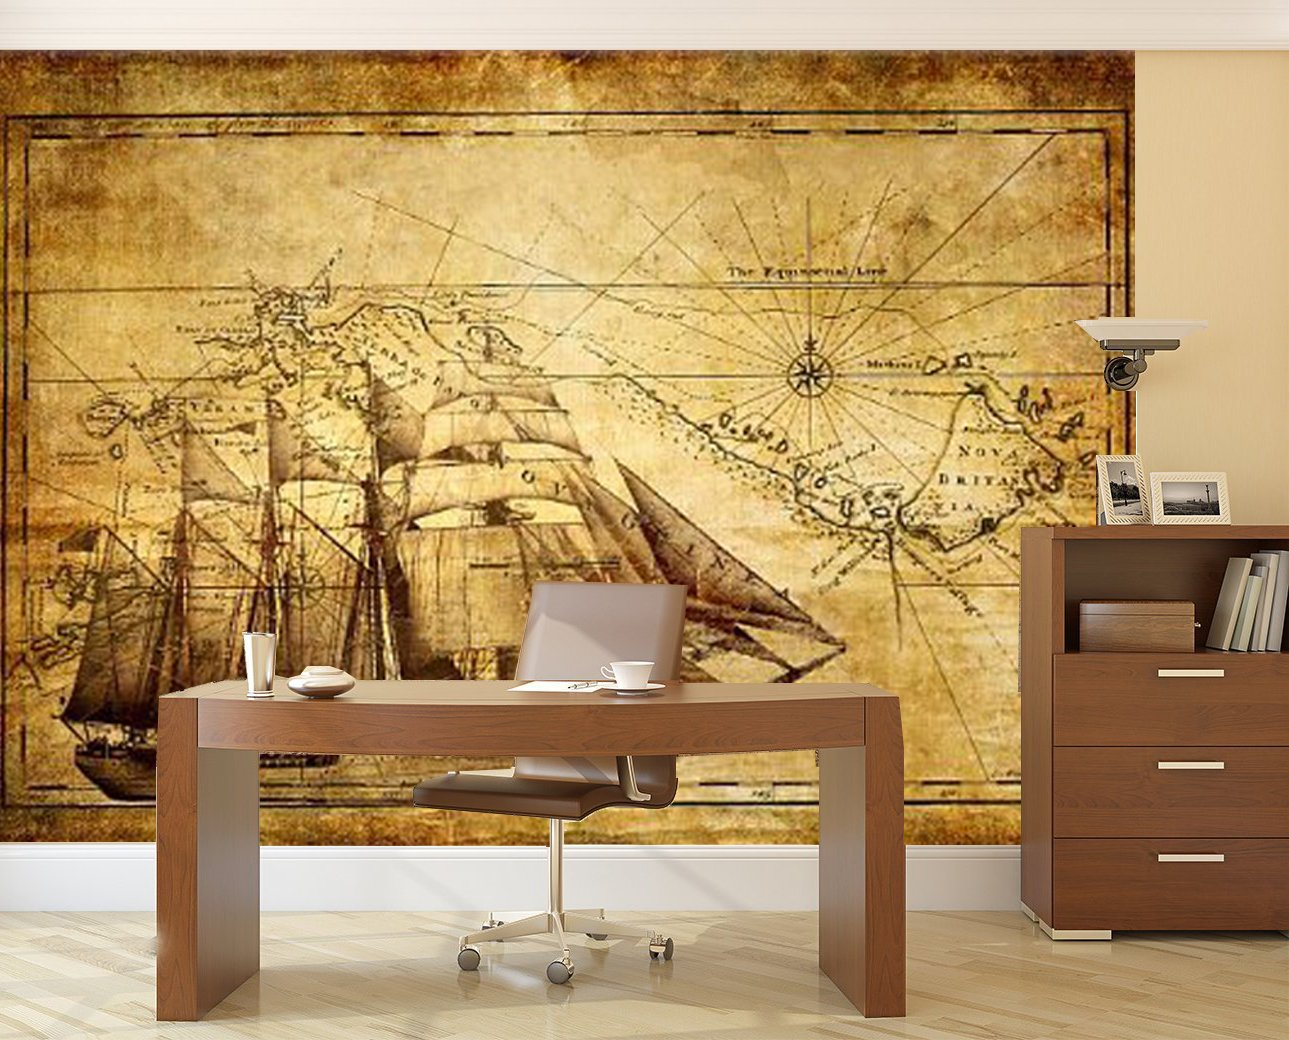 Startonight Mural Wall Art Photo Decor Old Map Large 8-feet 4-inch ...